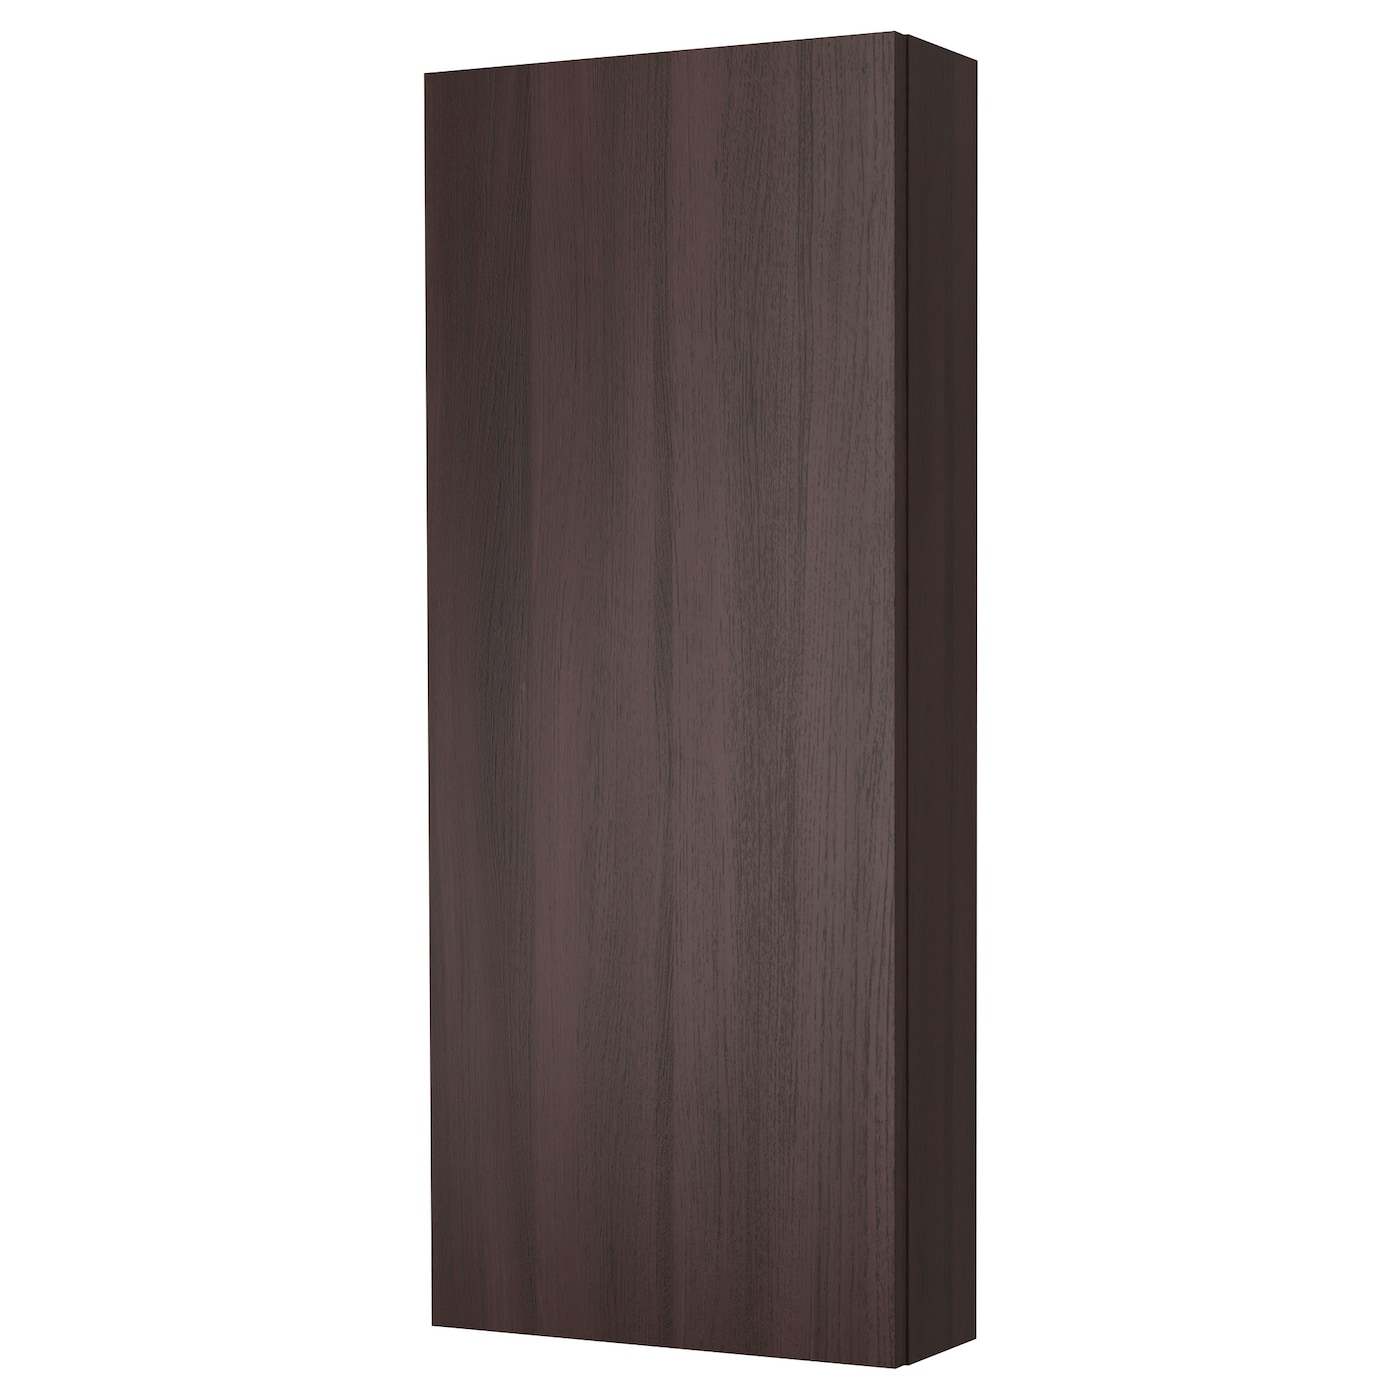 Godmorgon Wall Cabinet With 1 Door Black Brown 40 X 14 X